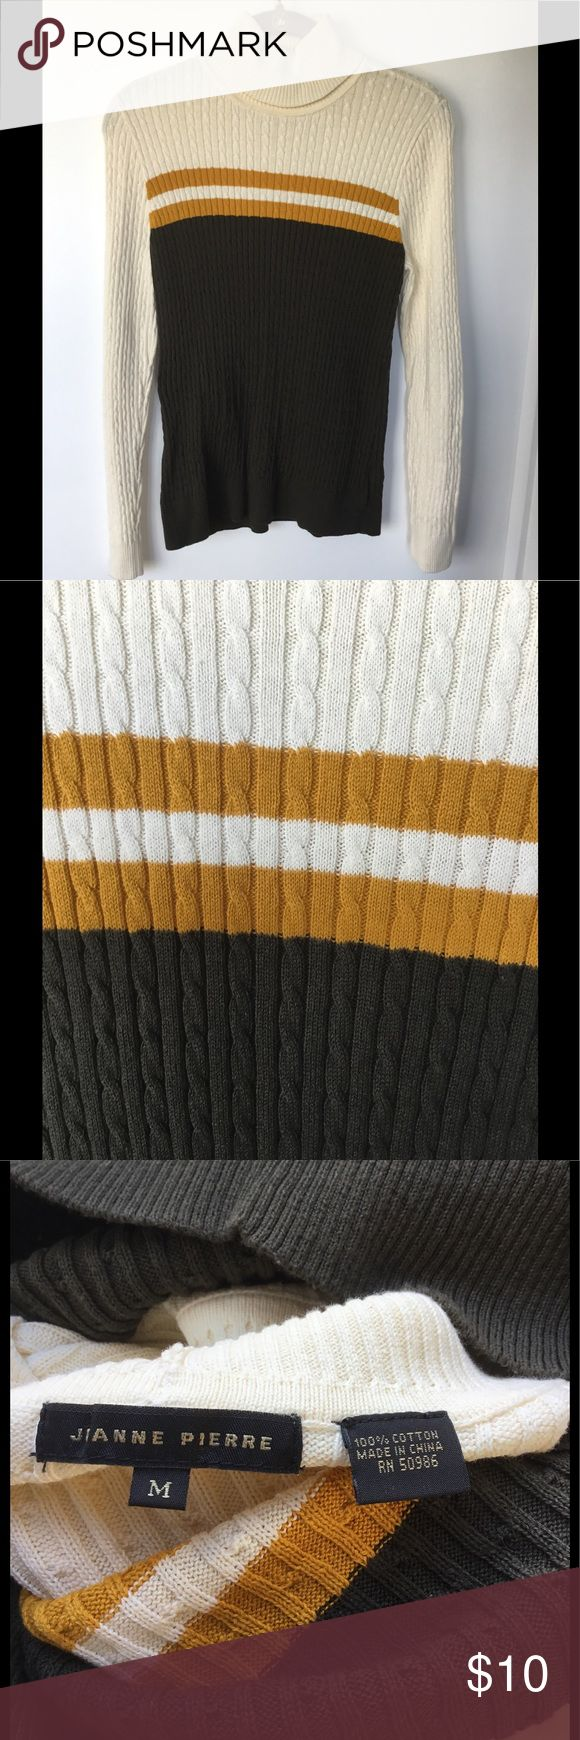 EUC Retro Striped Cotton Turtleneck EUC Retro Striped Cotton Turtleneck in cream, gold, and hunter green. Soft and comfy. Worn 1x. Please submit reasonable offers via the 'Offer' function. NO negotiating in the comments section, trading or alternate site transactions. All items from my smoke-free, dog-friendly closet. Jianne Pierre Sweaters Cowl & Turtlenecks